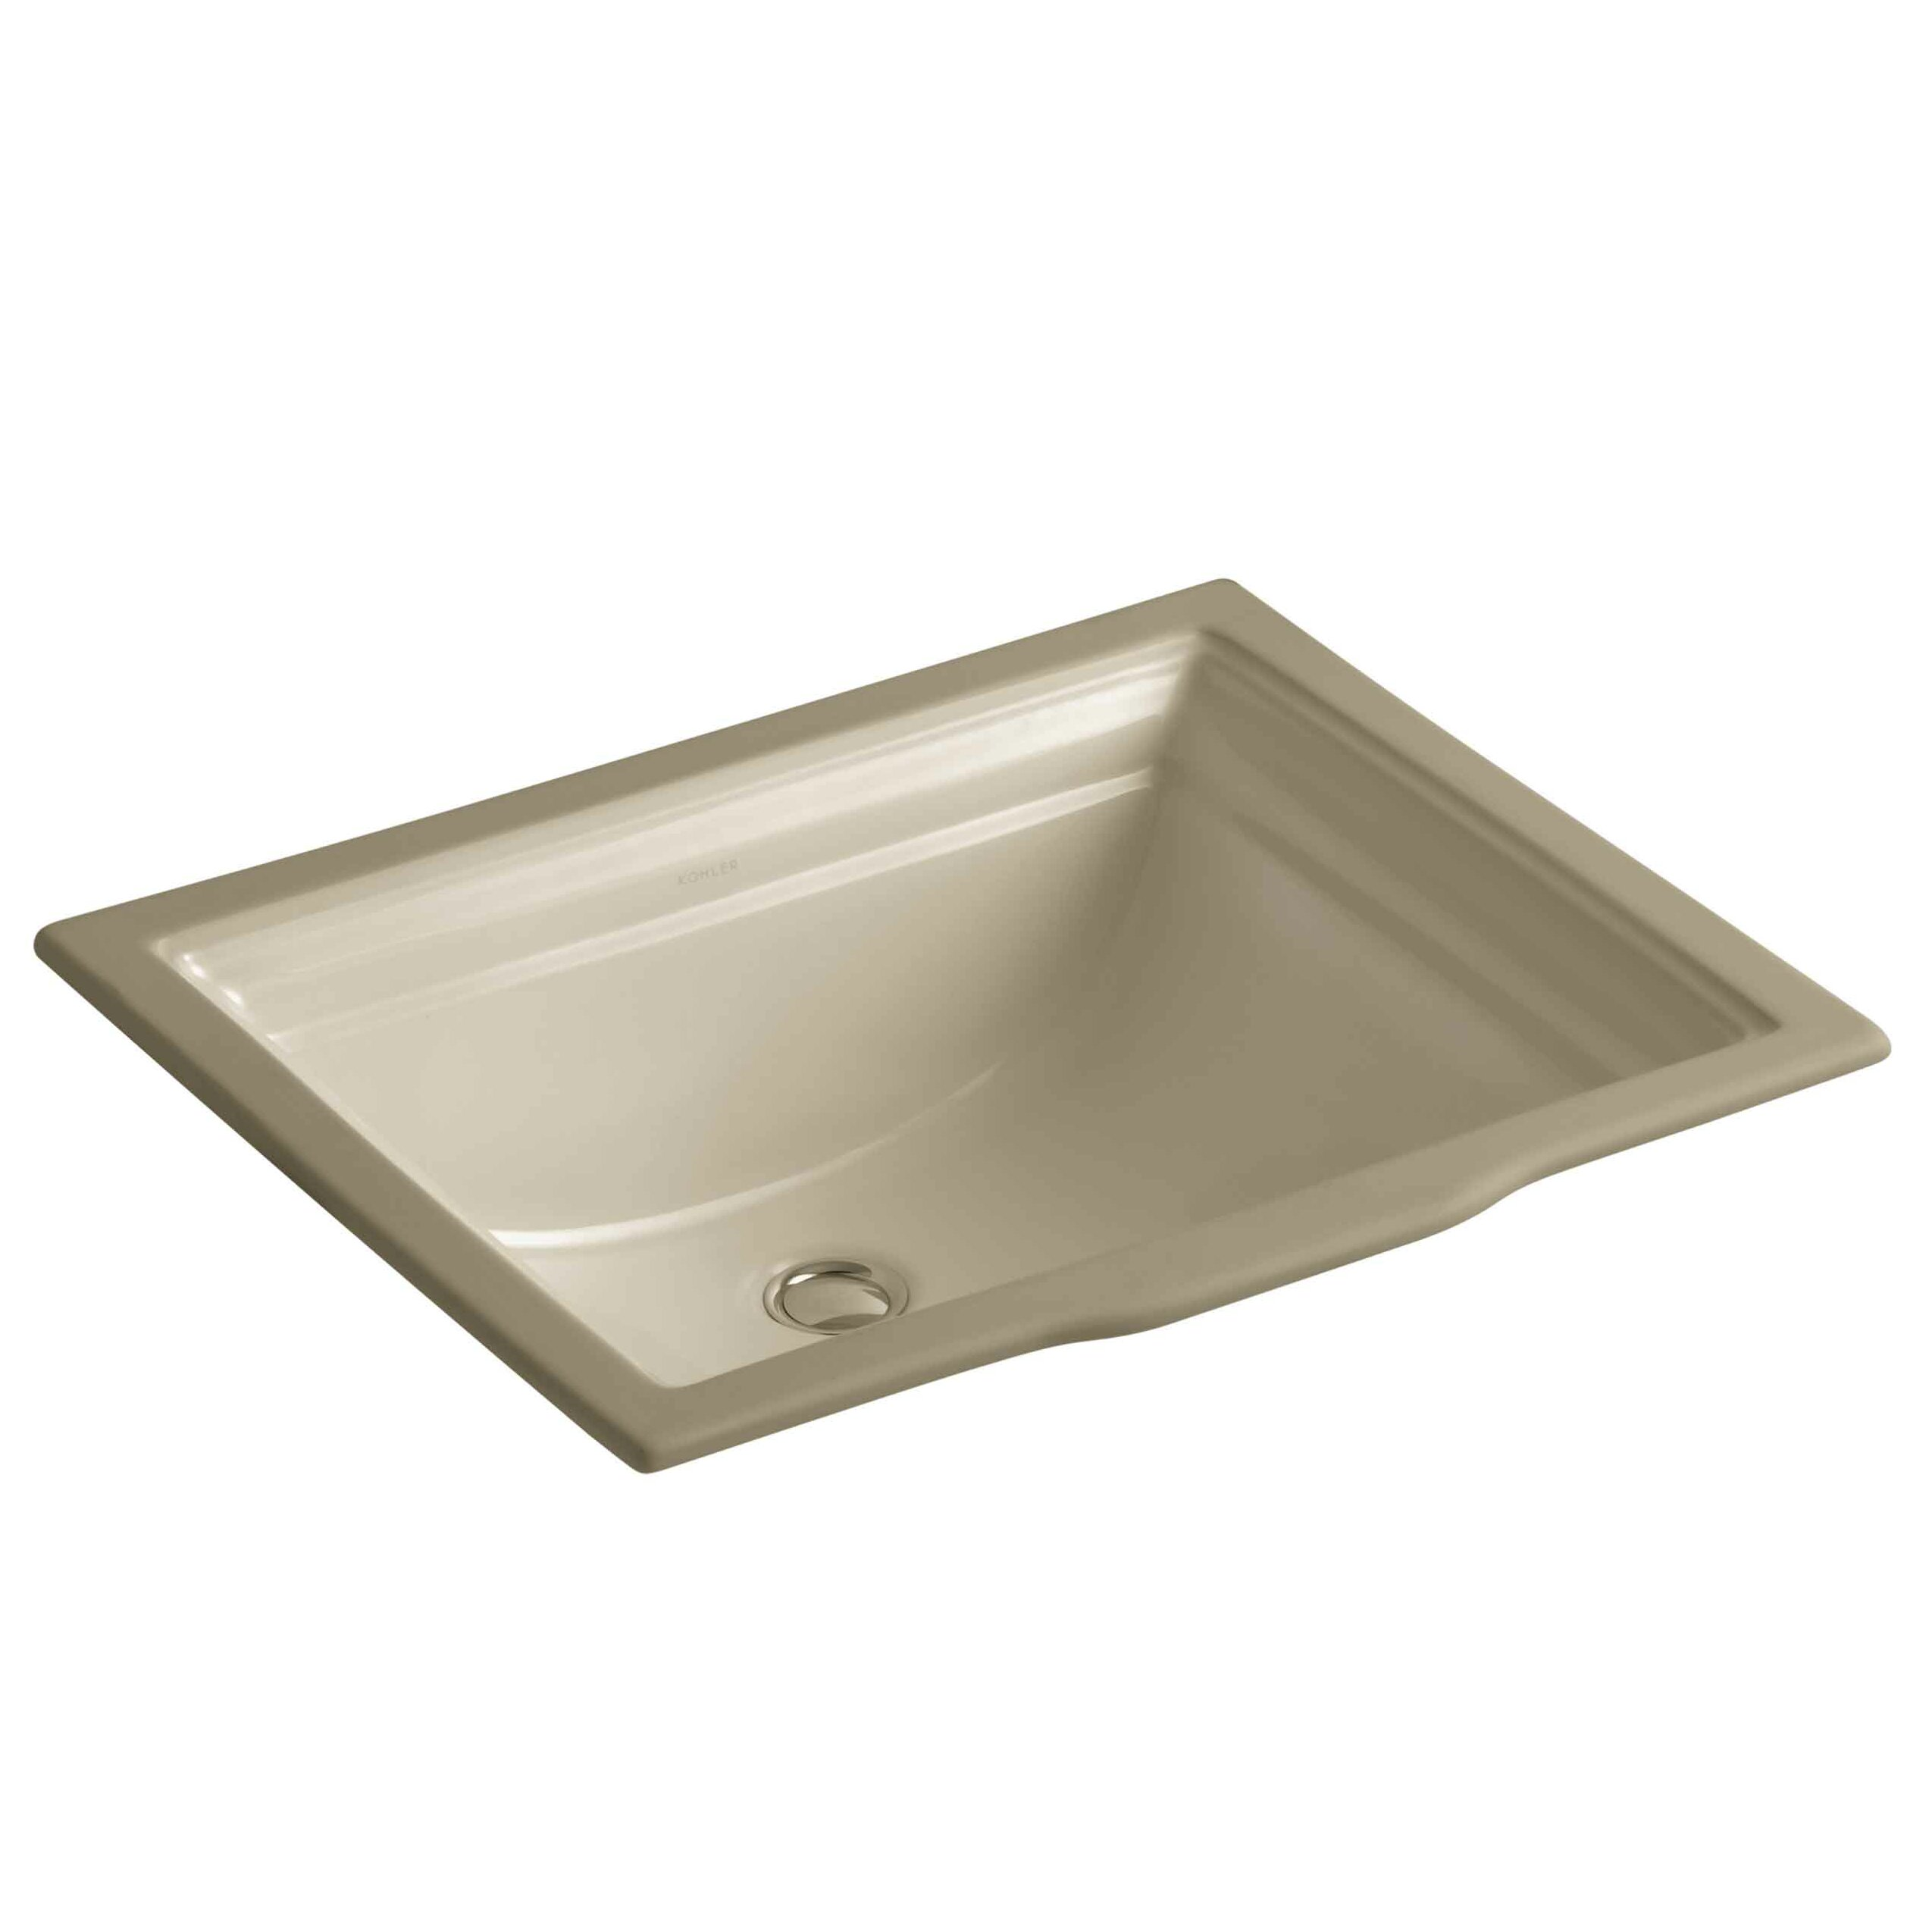 kohler memoirs undermount bathroom sink kohler memoirs undermount bathroom sink amp reviews wayfair 23586